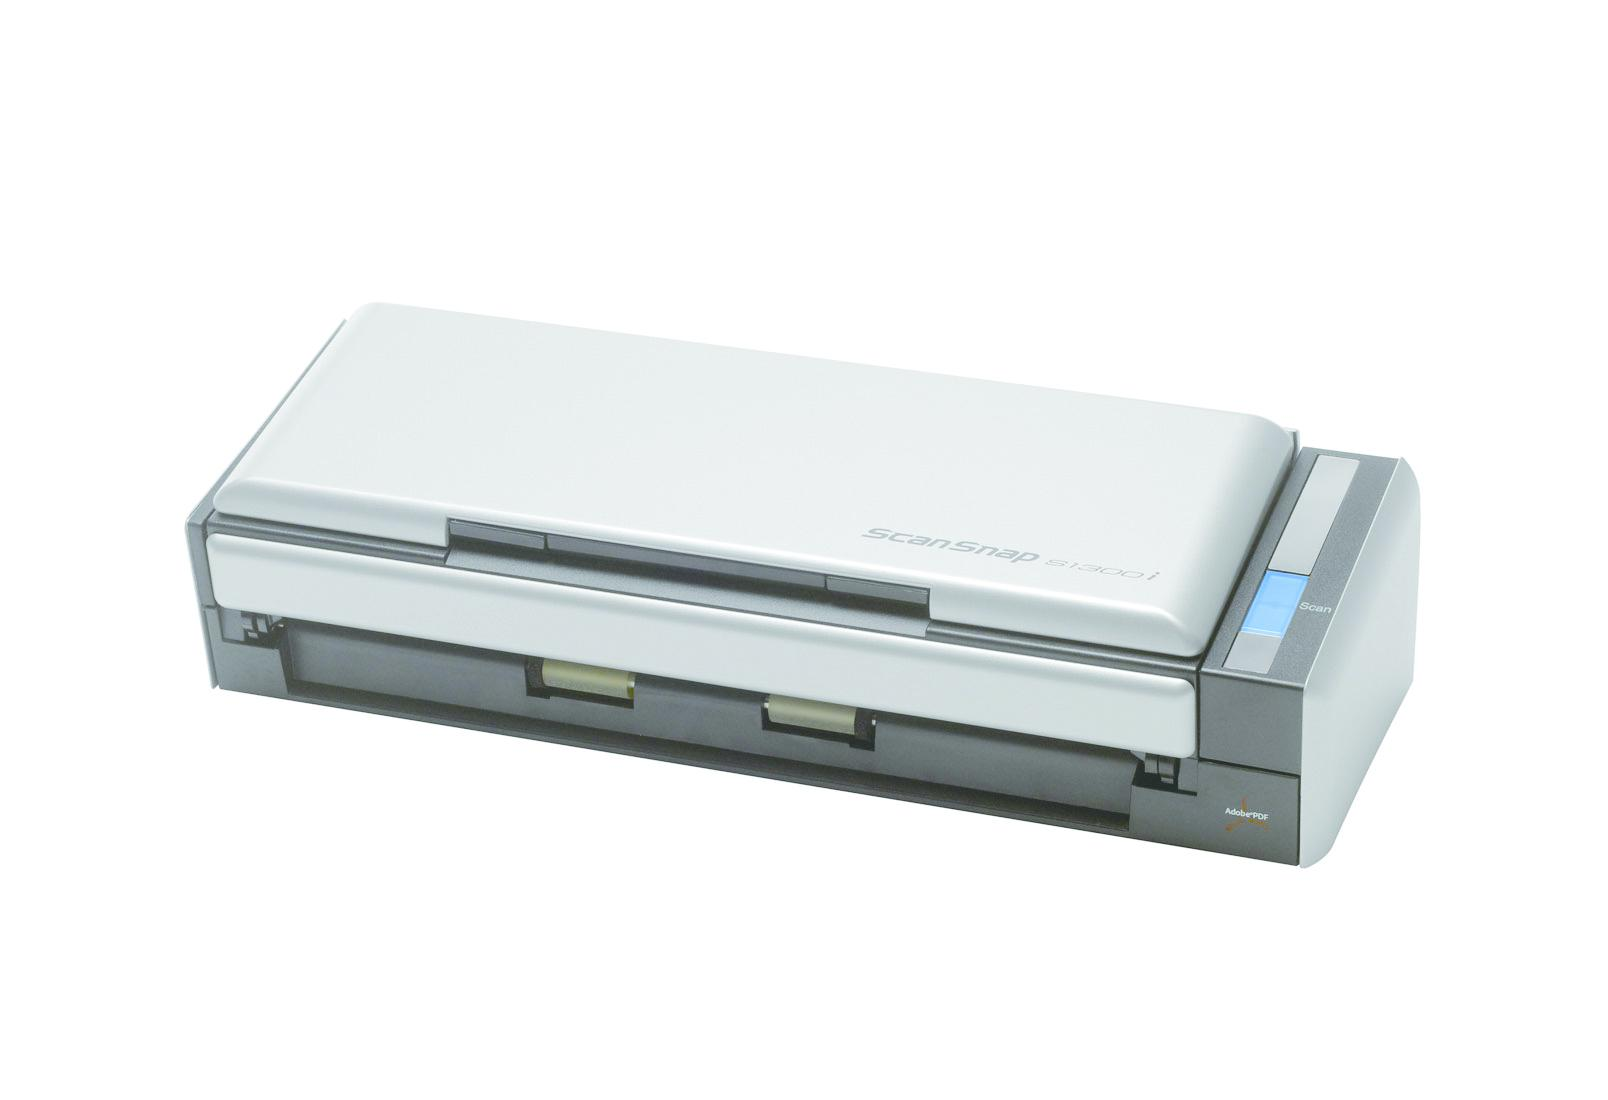 Fujitsu ScanSnap S1300i Sheet-fed scanner